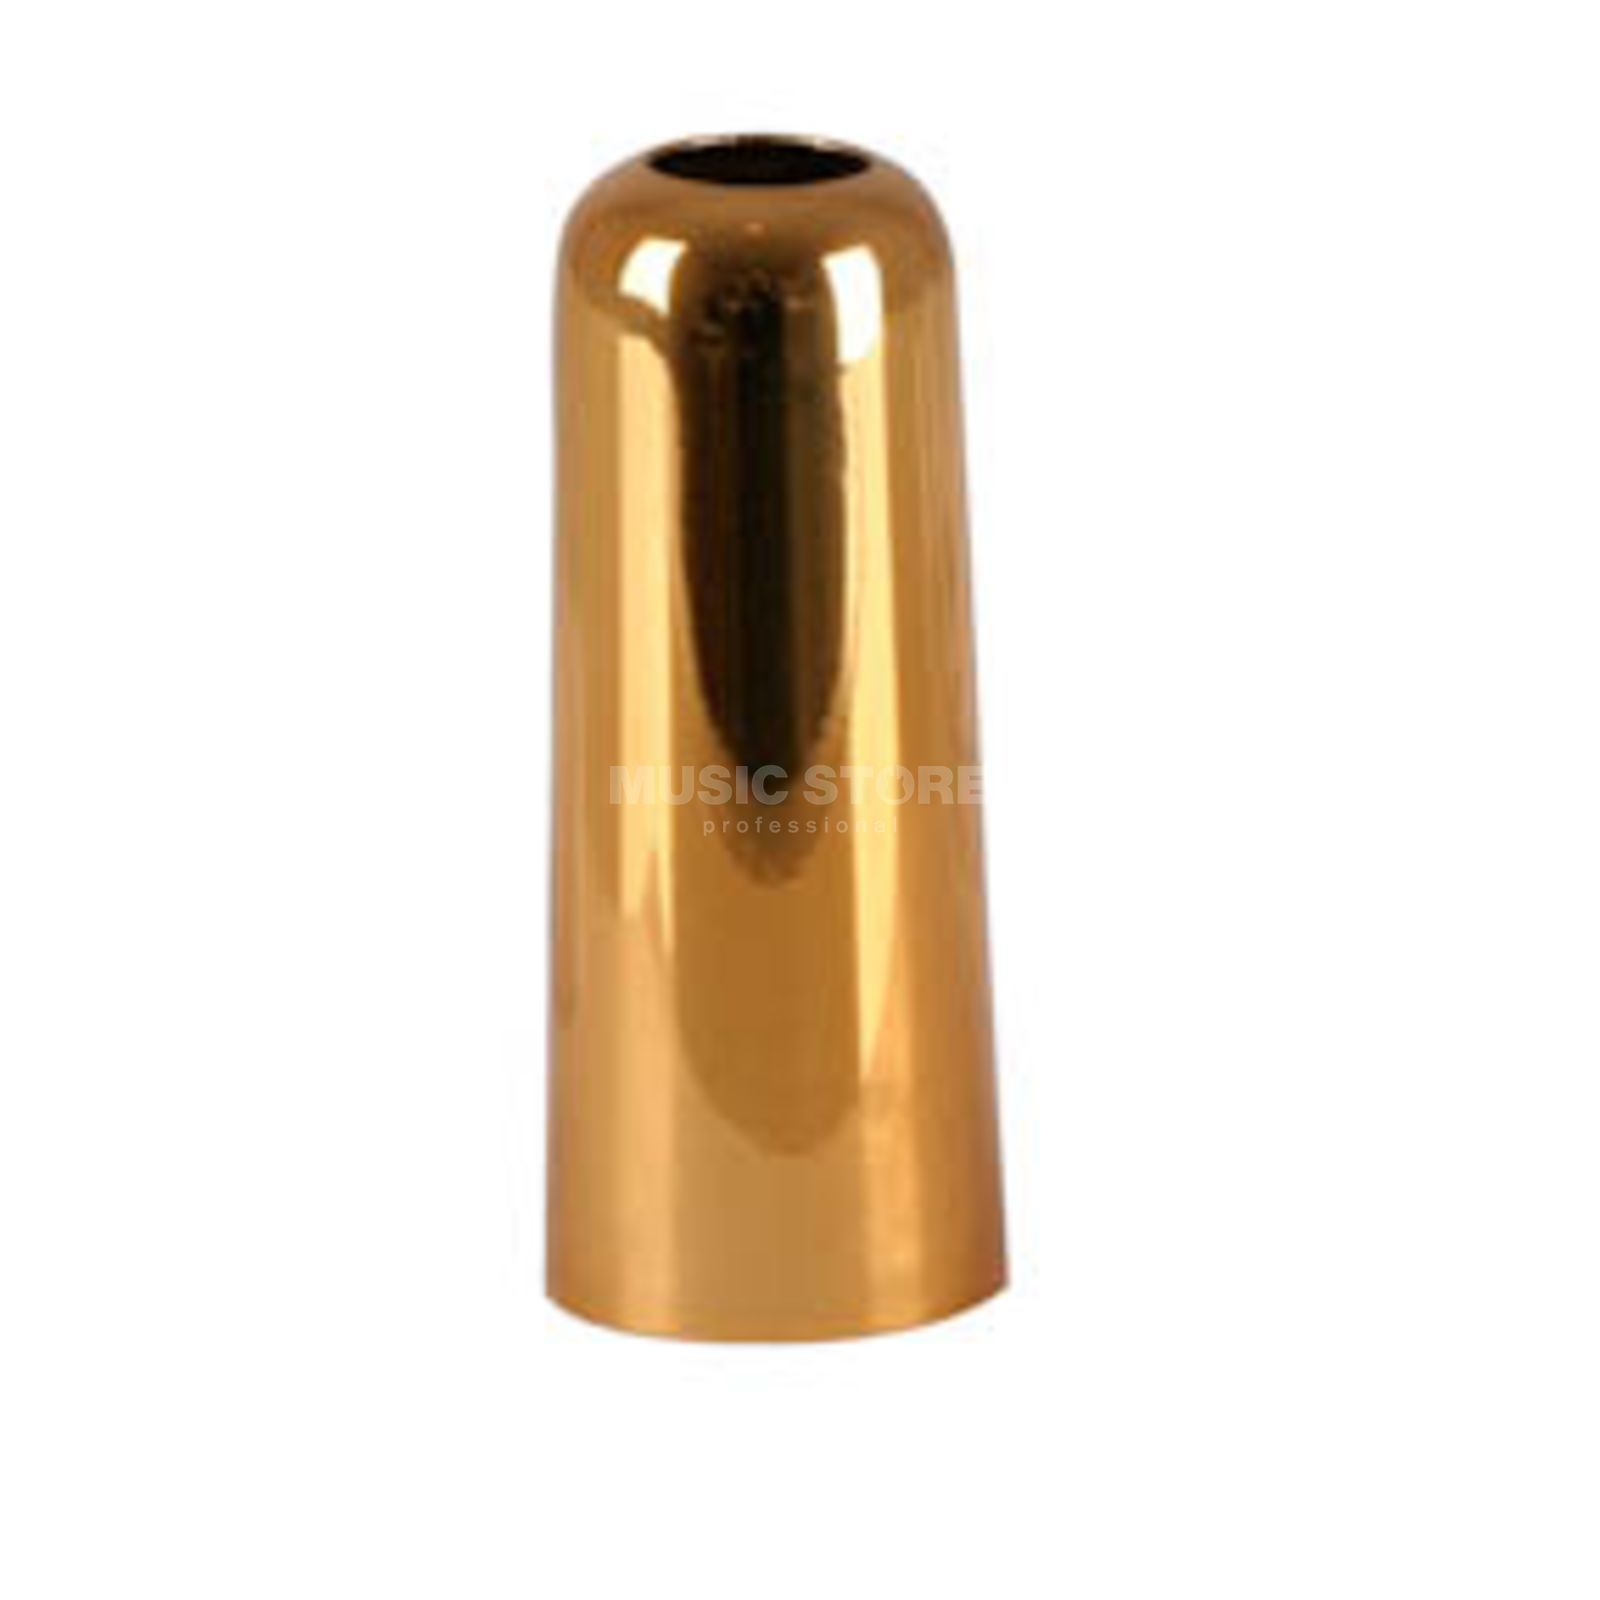 OTTO LINK Capsule for Alto / Tenor Saxophone Mouth-Piece Produktbillede